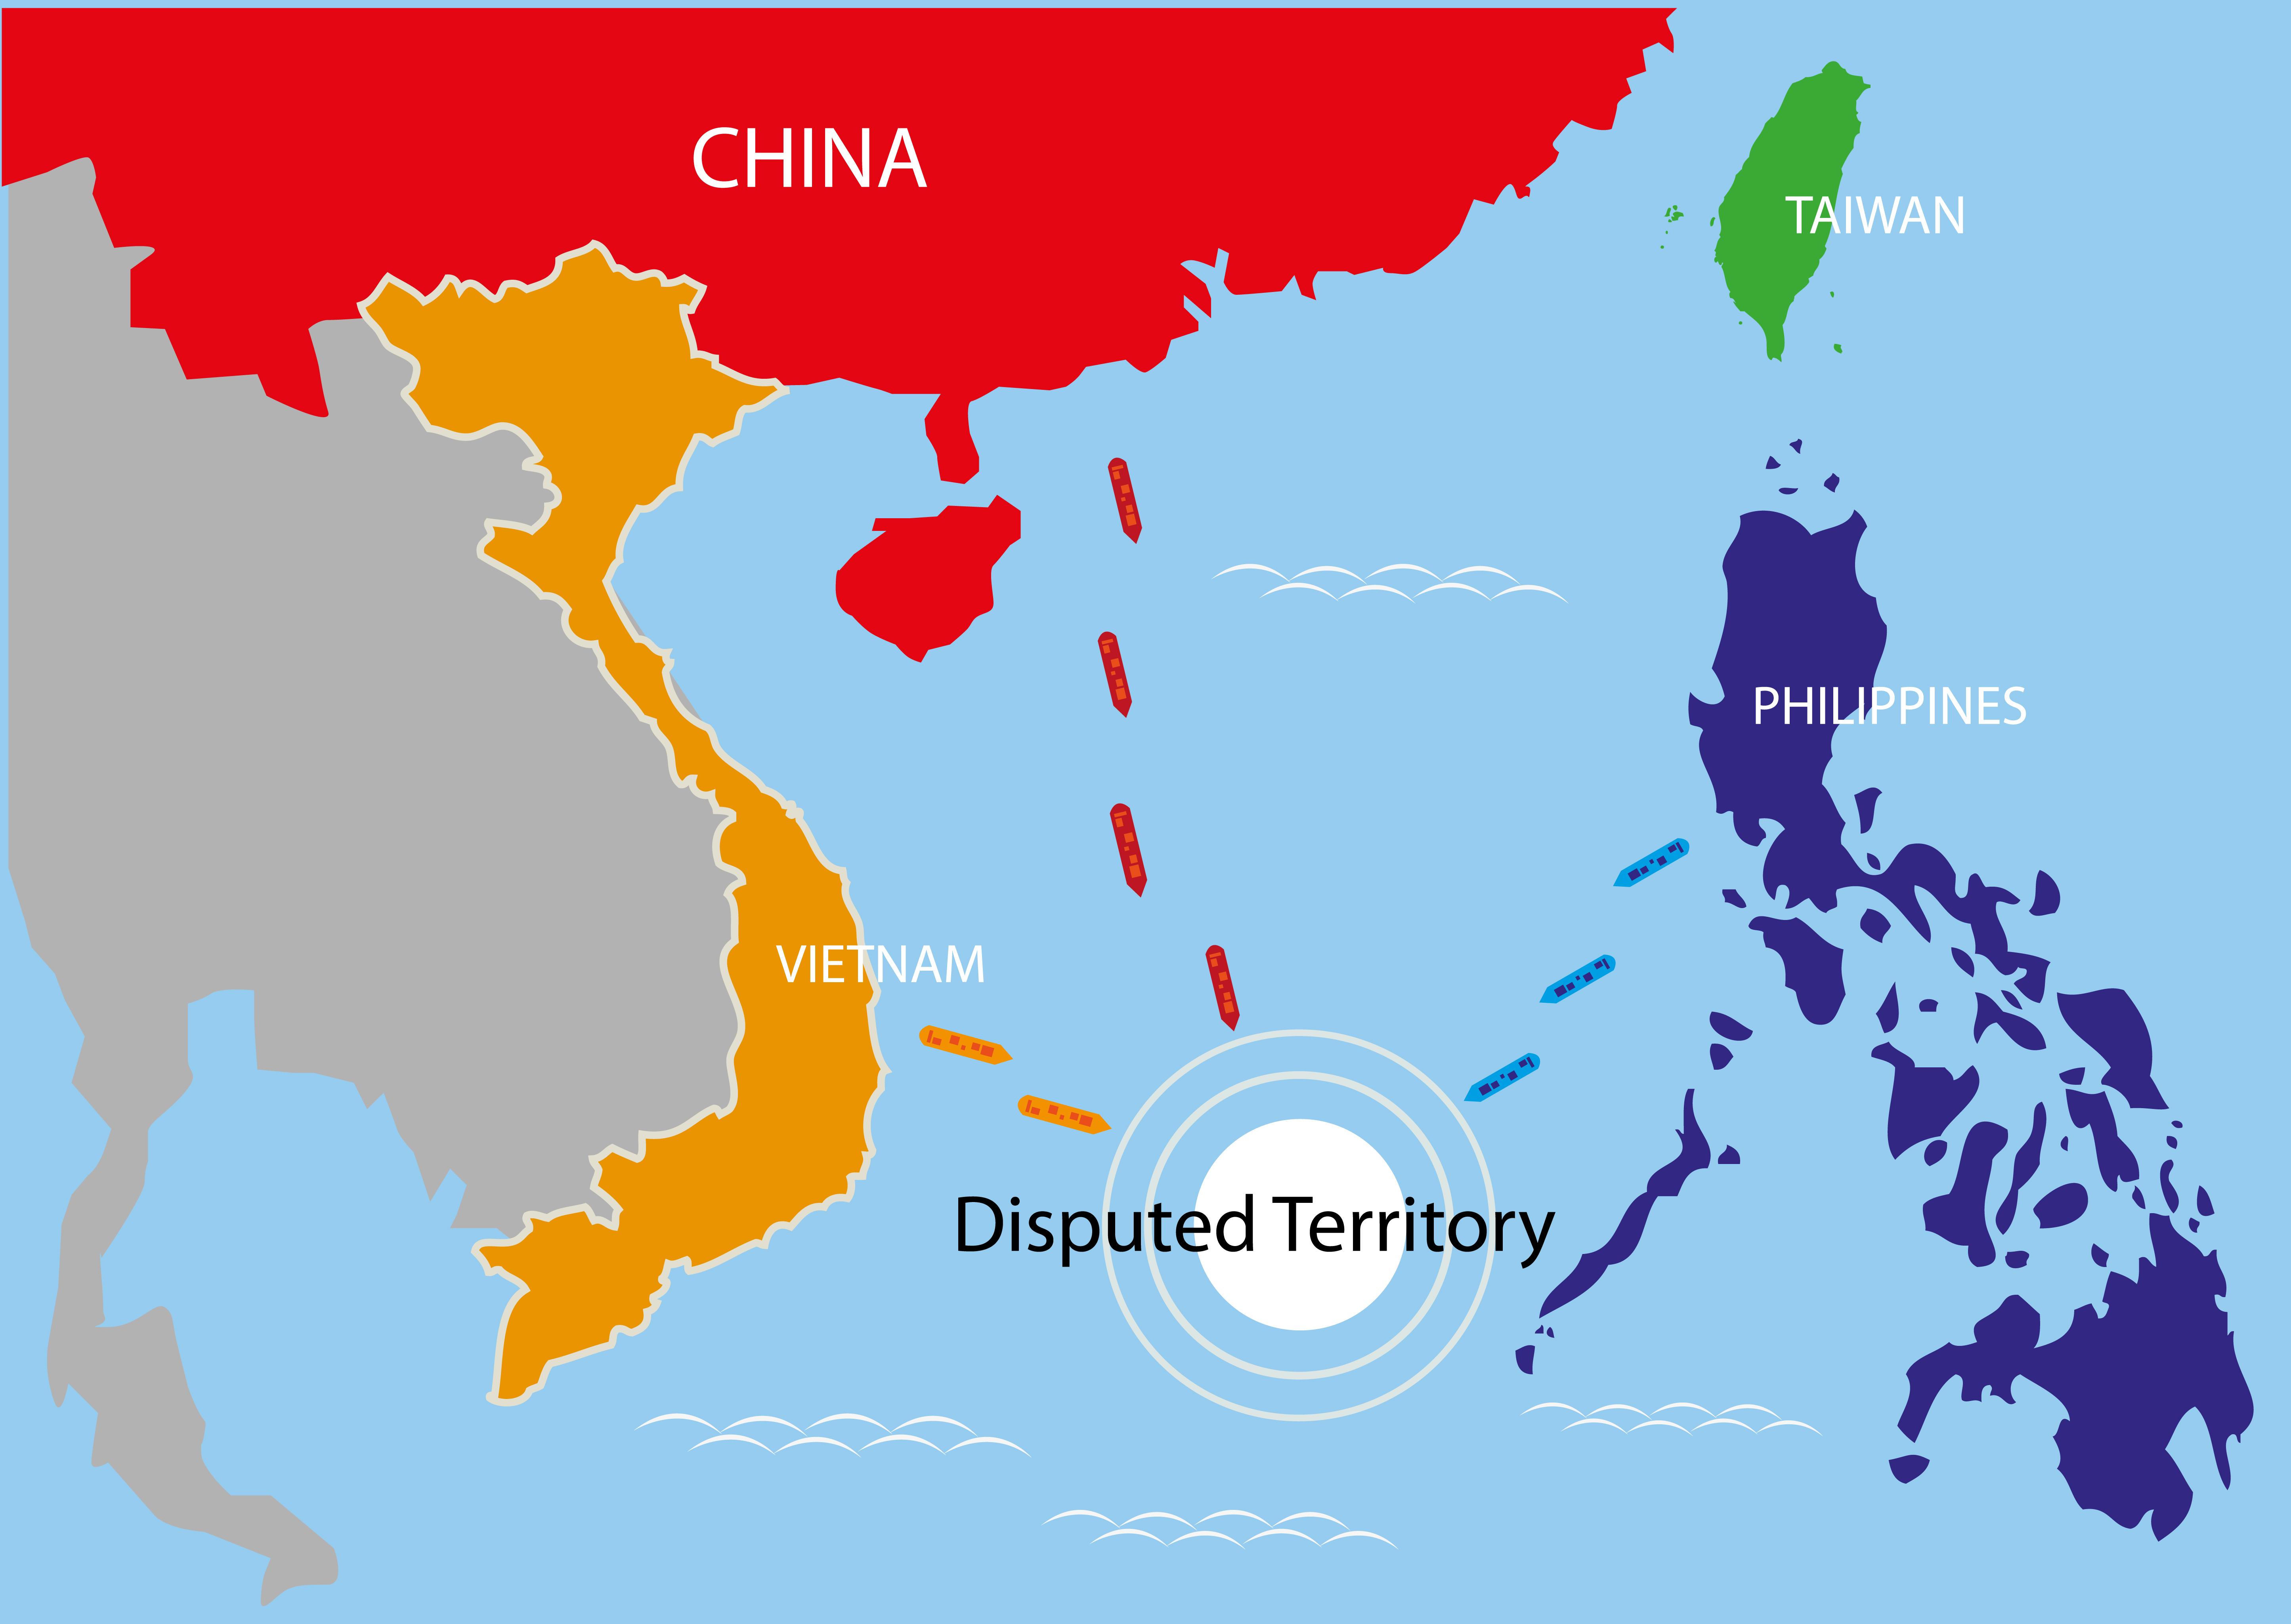 south china sea war with China